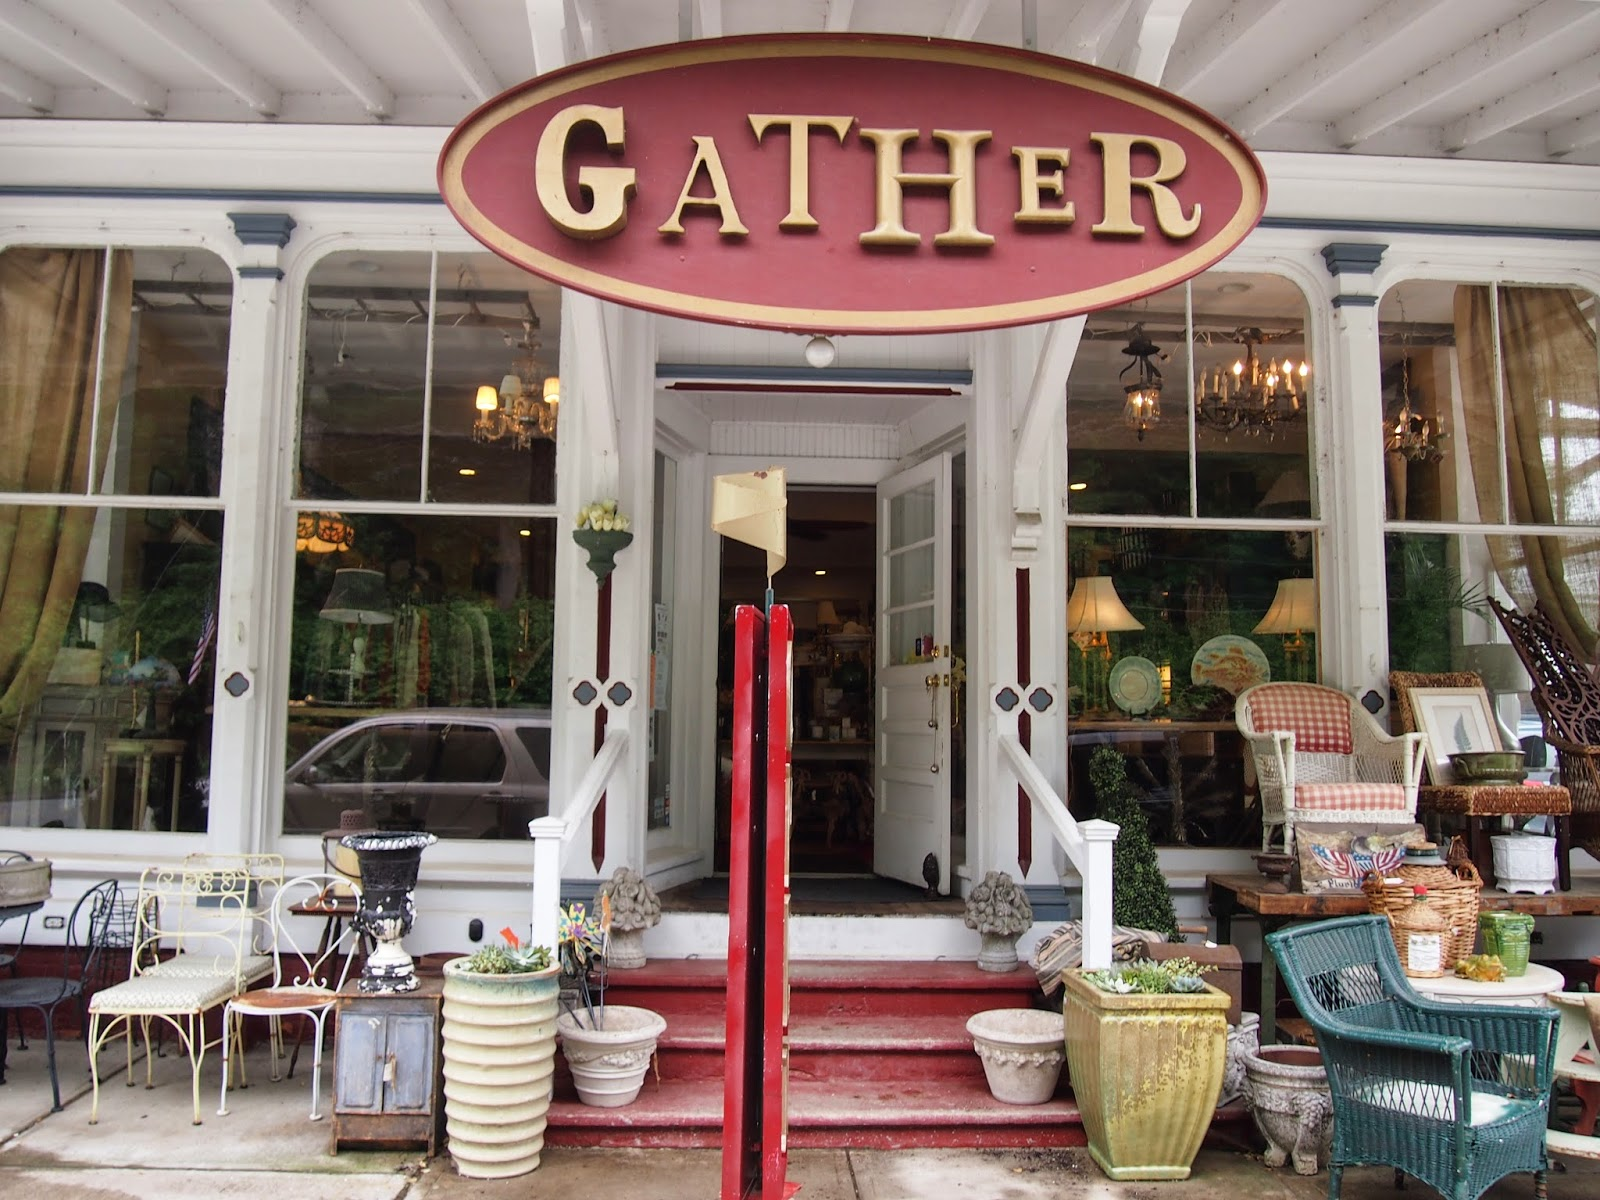 The shop, Gather, in Ivoryton, Connecticut